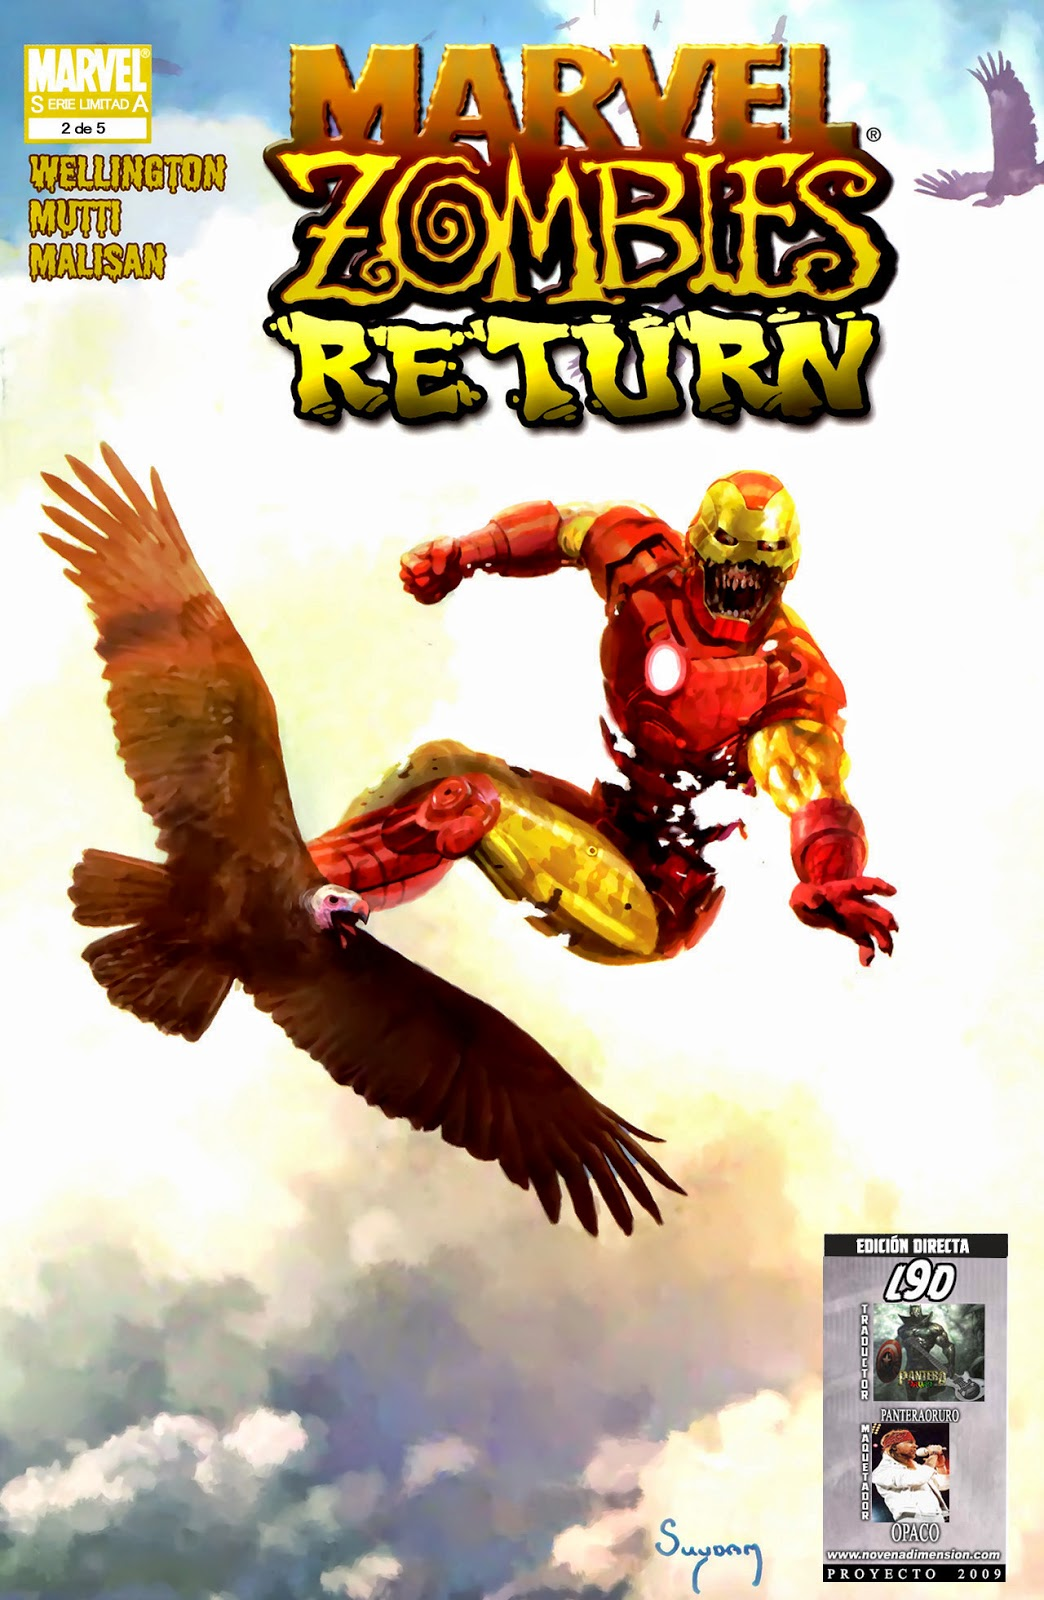 Marvel Zombies Return: Iron Man